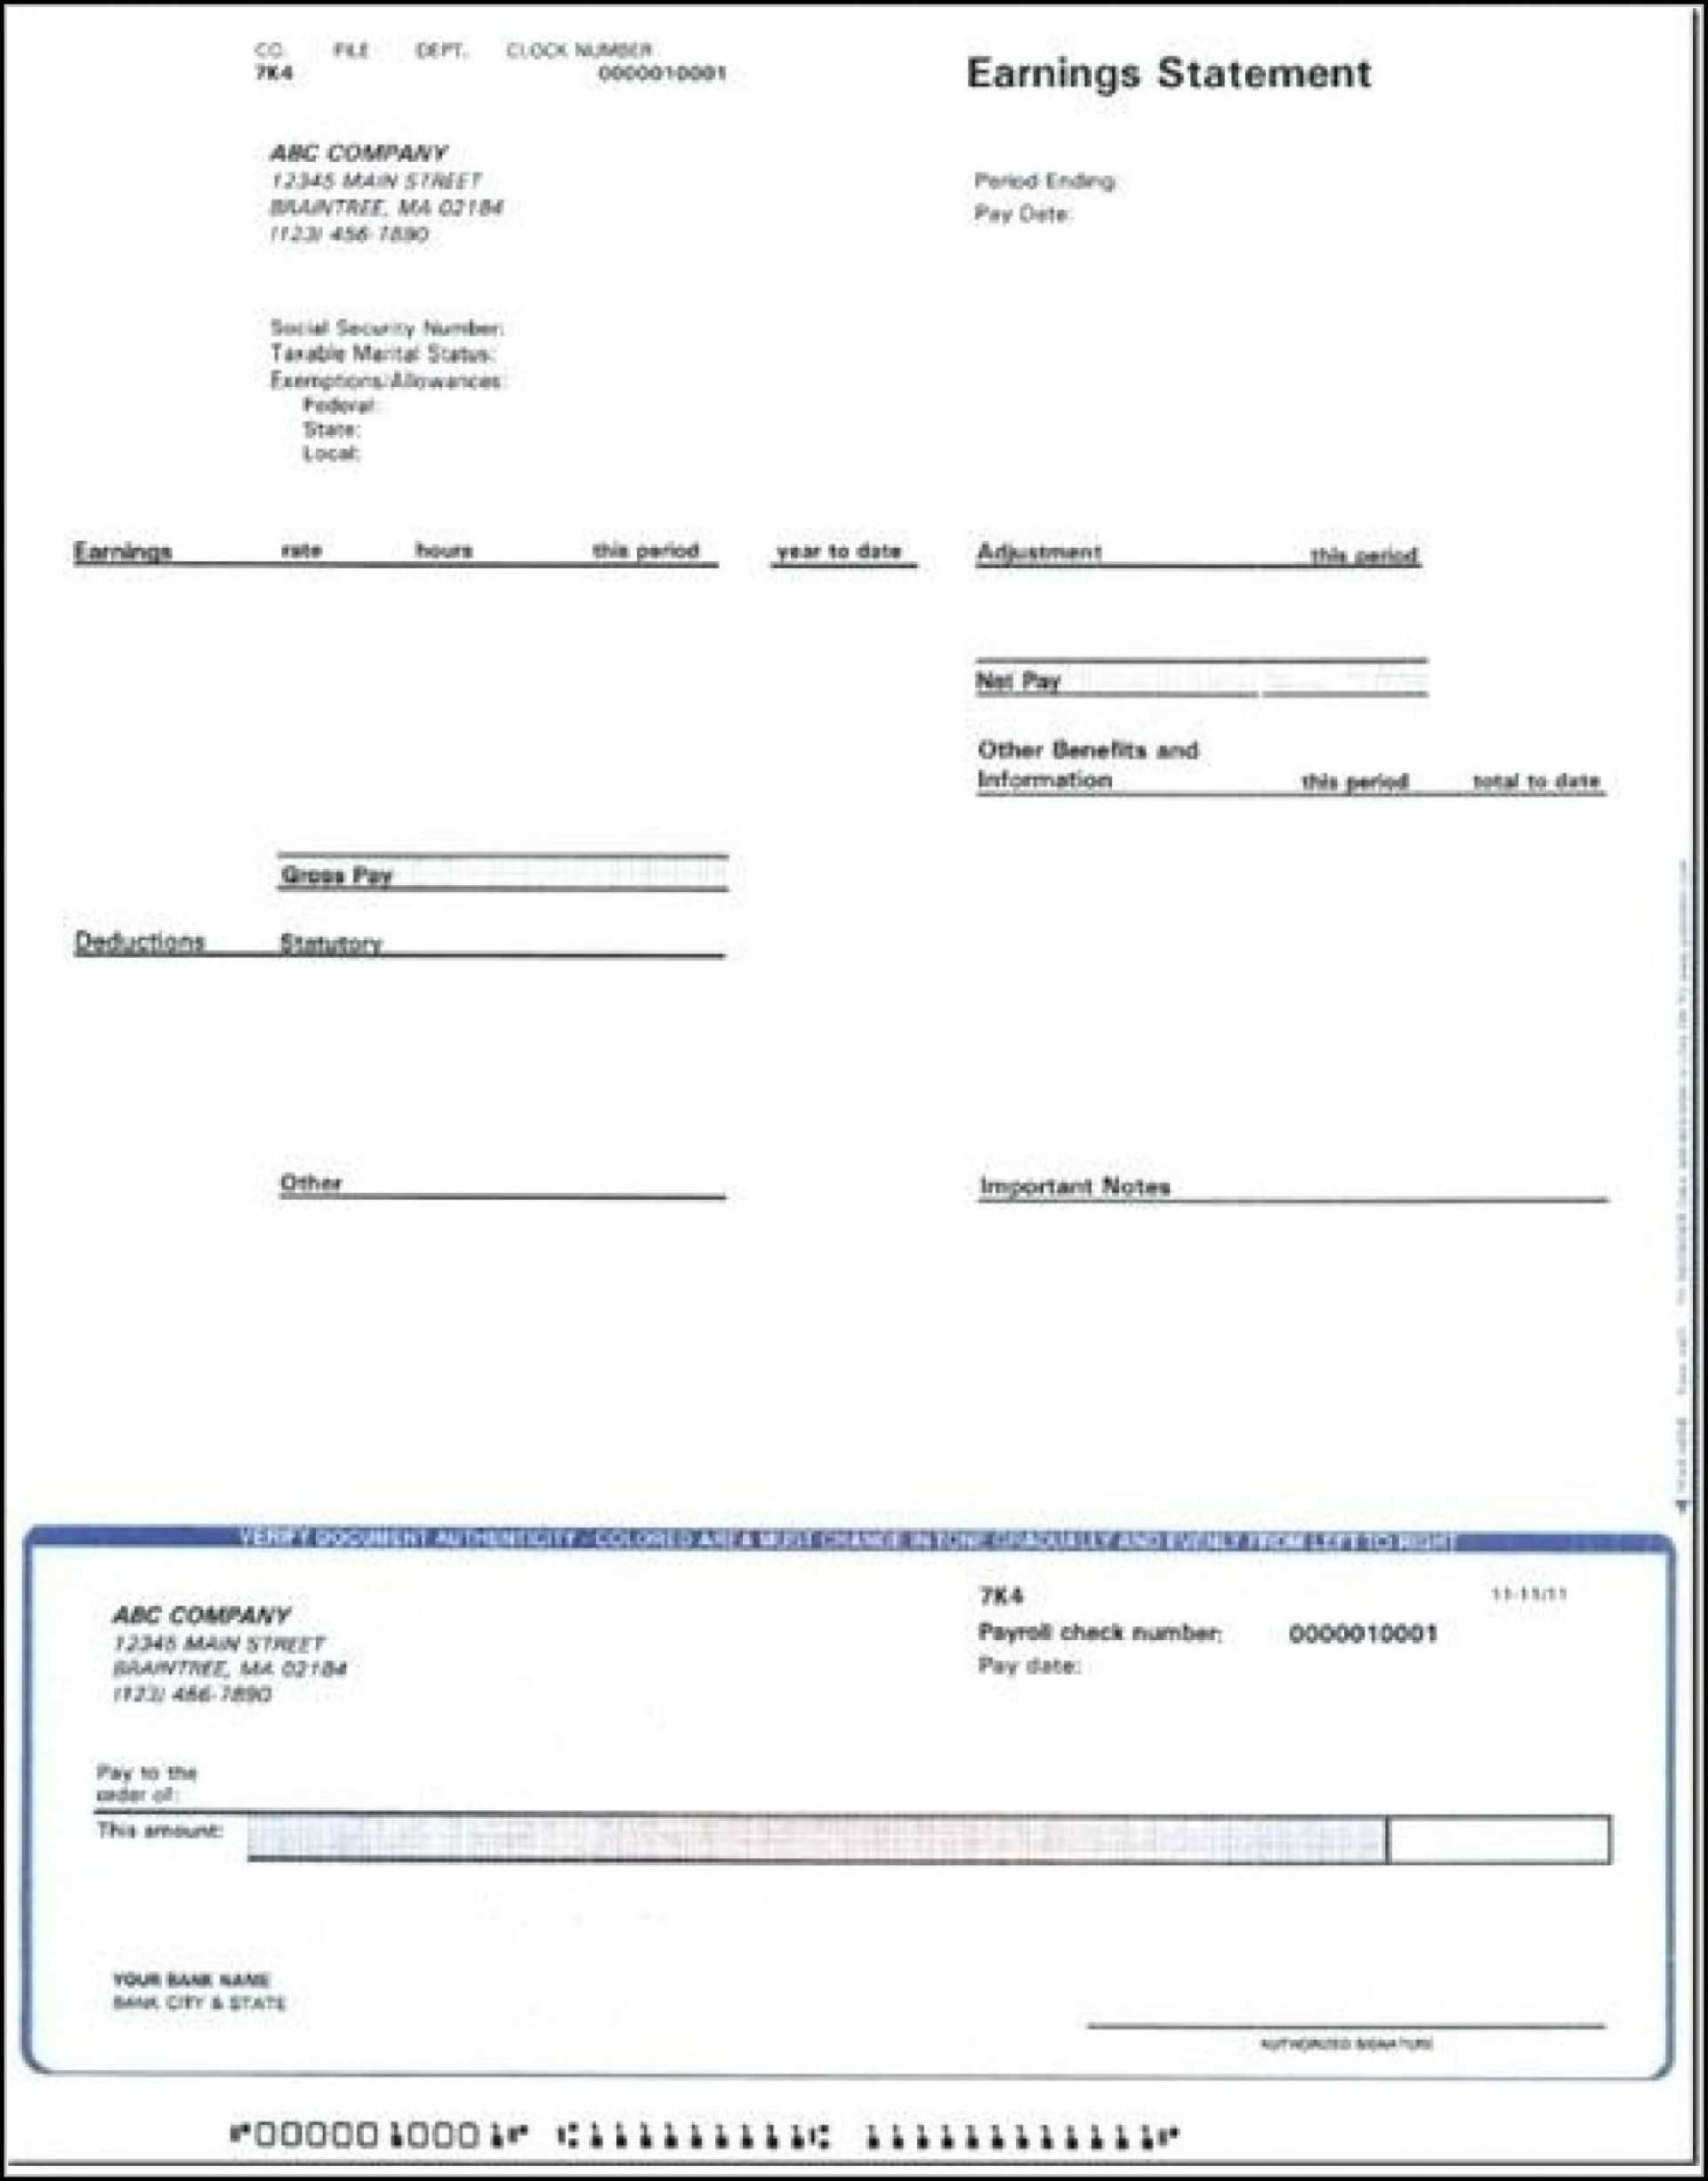 037 Blank Pay Stub Template Templates 1920X1459 Stirring with Blank Pay Stubs Template